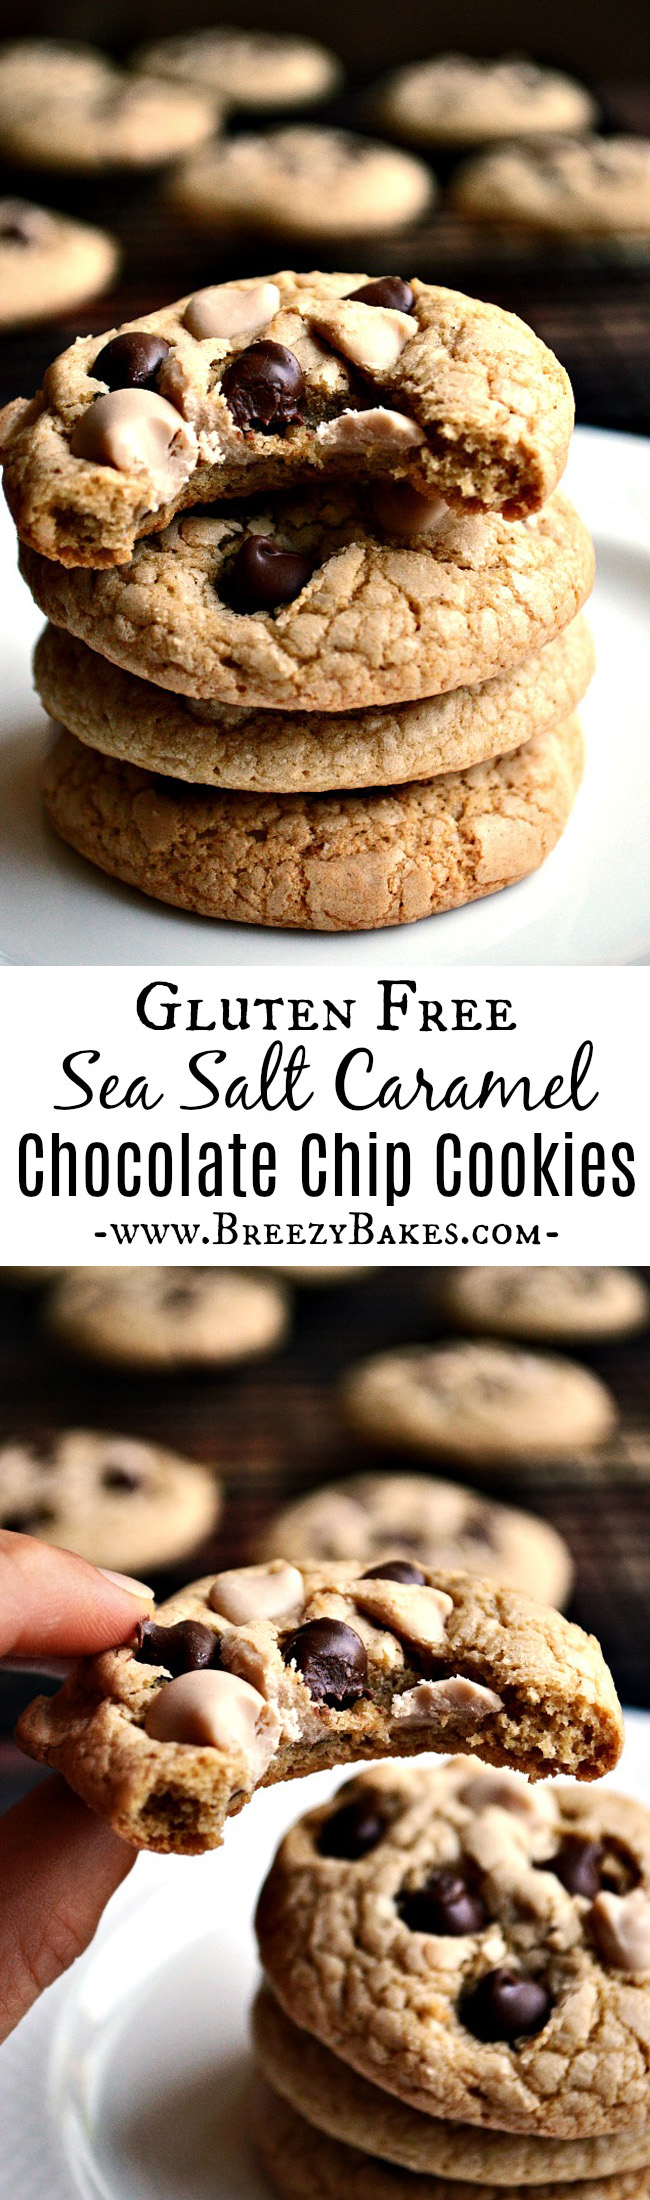 Ghirardelli has outdone themselves with their new caramel baking chips! They're the perfect addition for these sweet and salty Gluten Free Caramel Chocolate Chip Cookies.